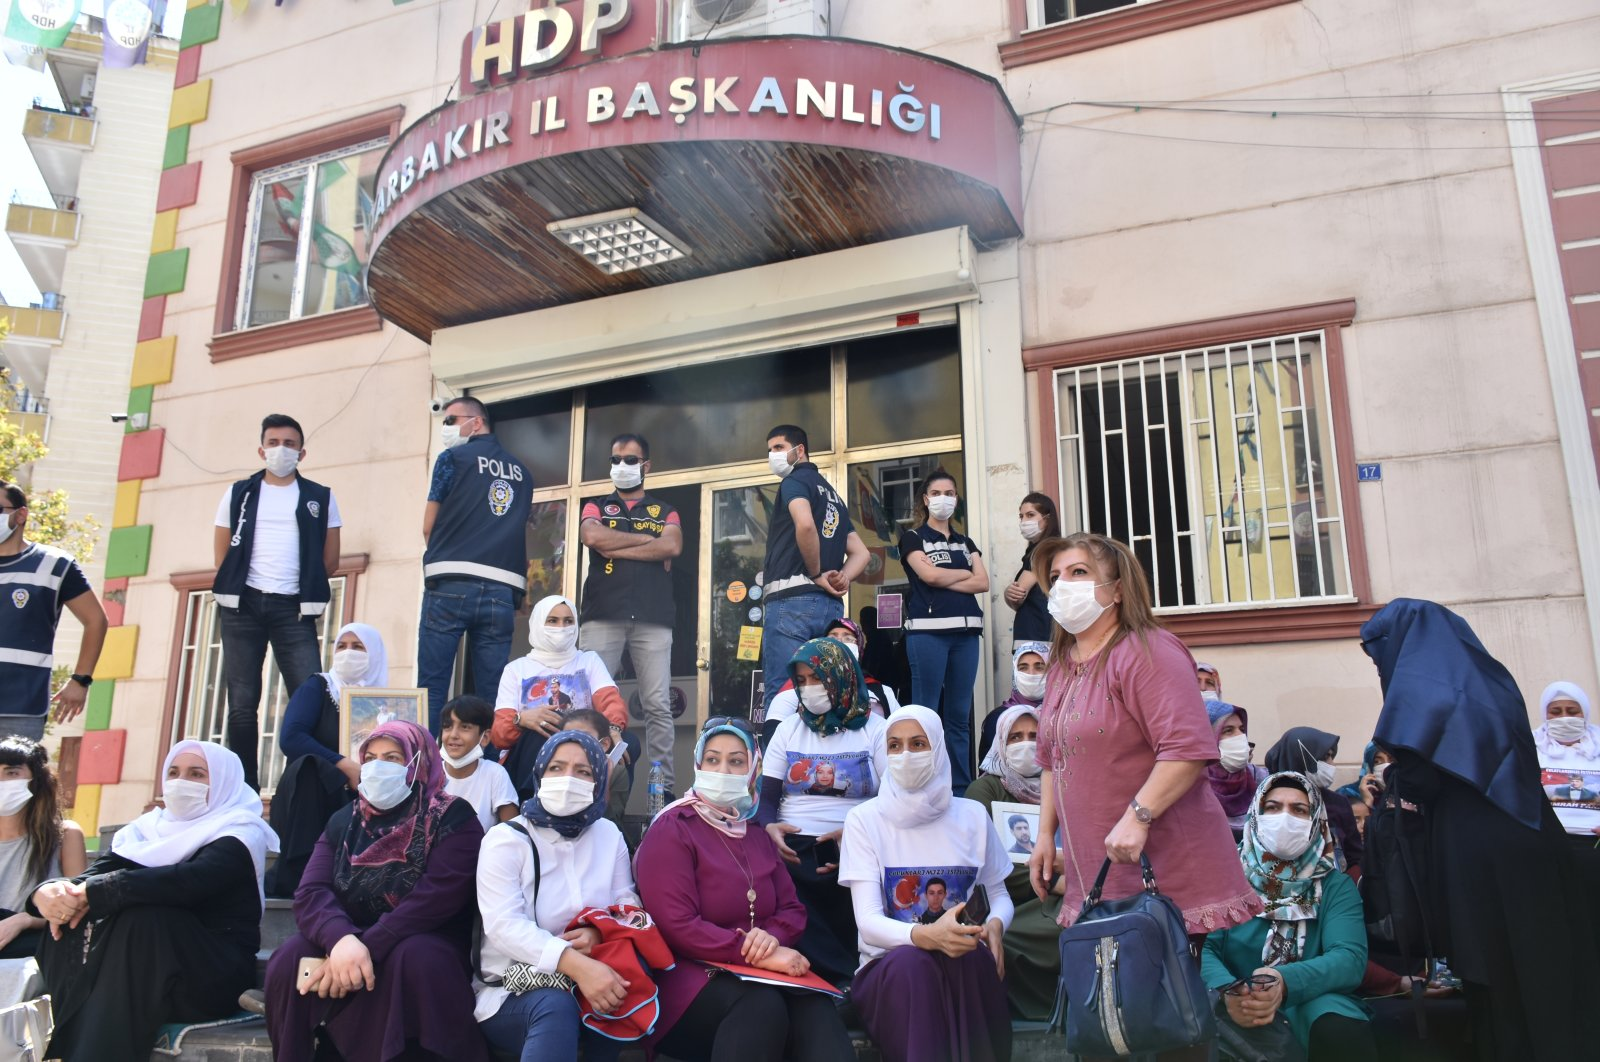 Families stage a sit-in protest in front of the Peoples' Democratic Party's (HDP) headquarters in Diyarbakır, Turkey, Sept. 3, 2020. (AA Photo)